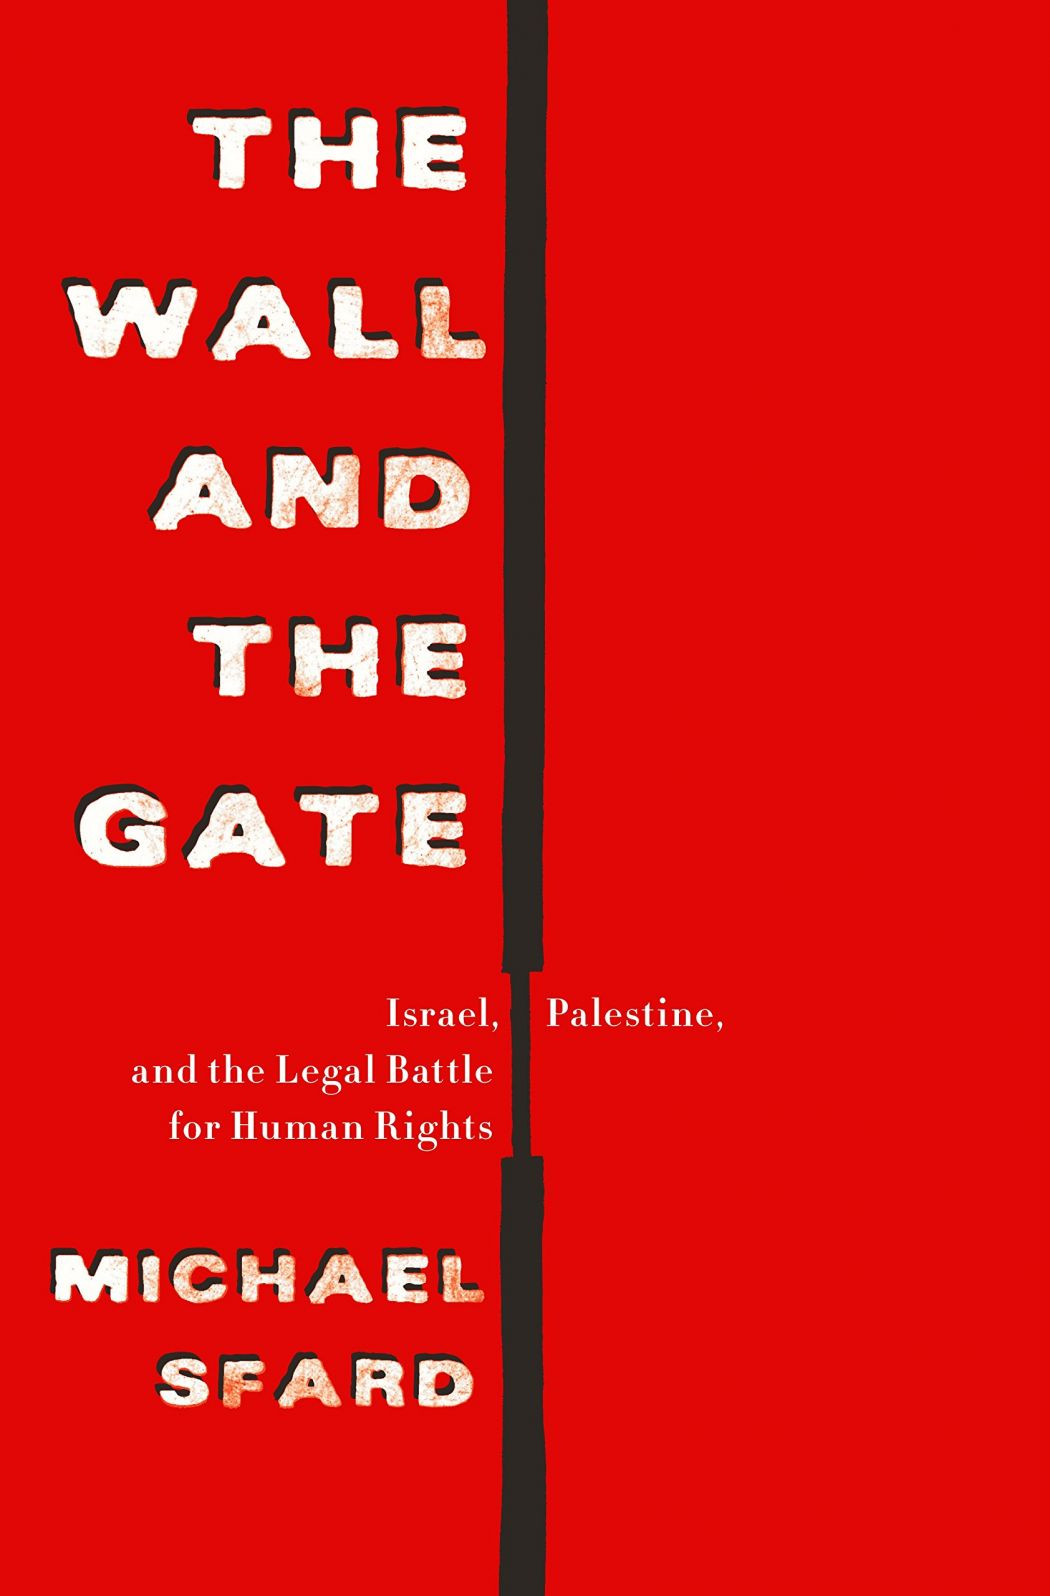 The Wall and the Gate: Israel, Palestine, and the Legal Battle for Human Rights